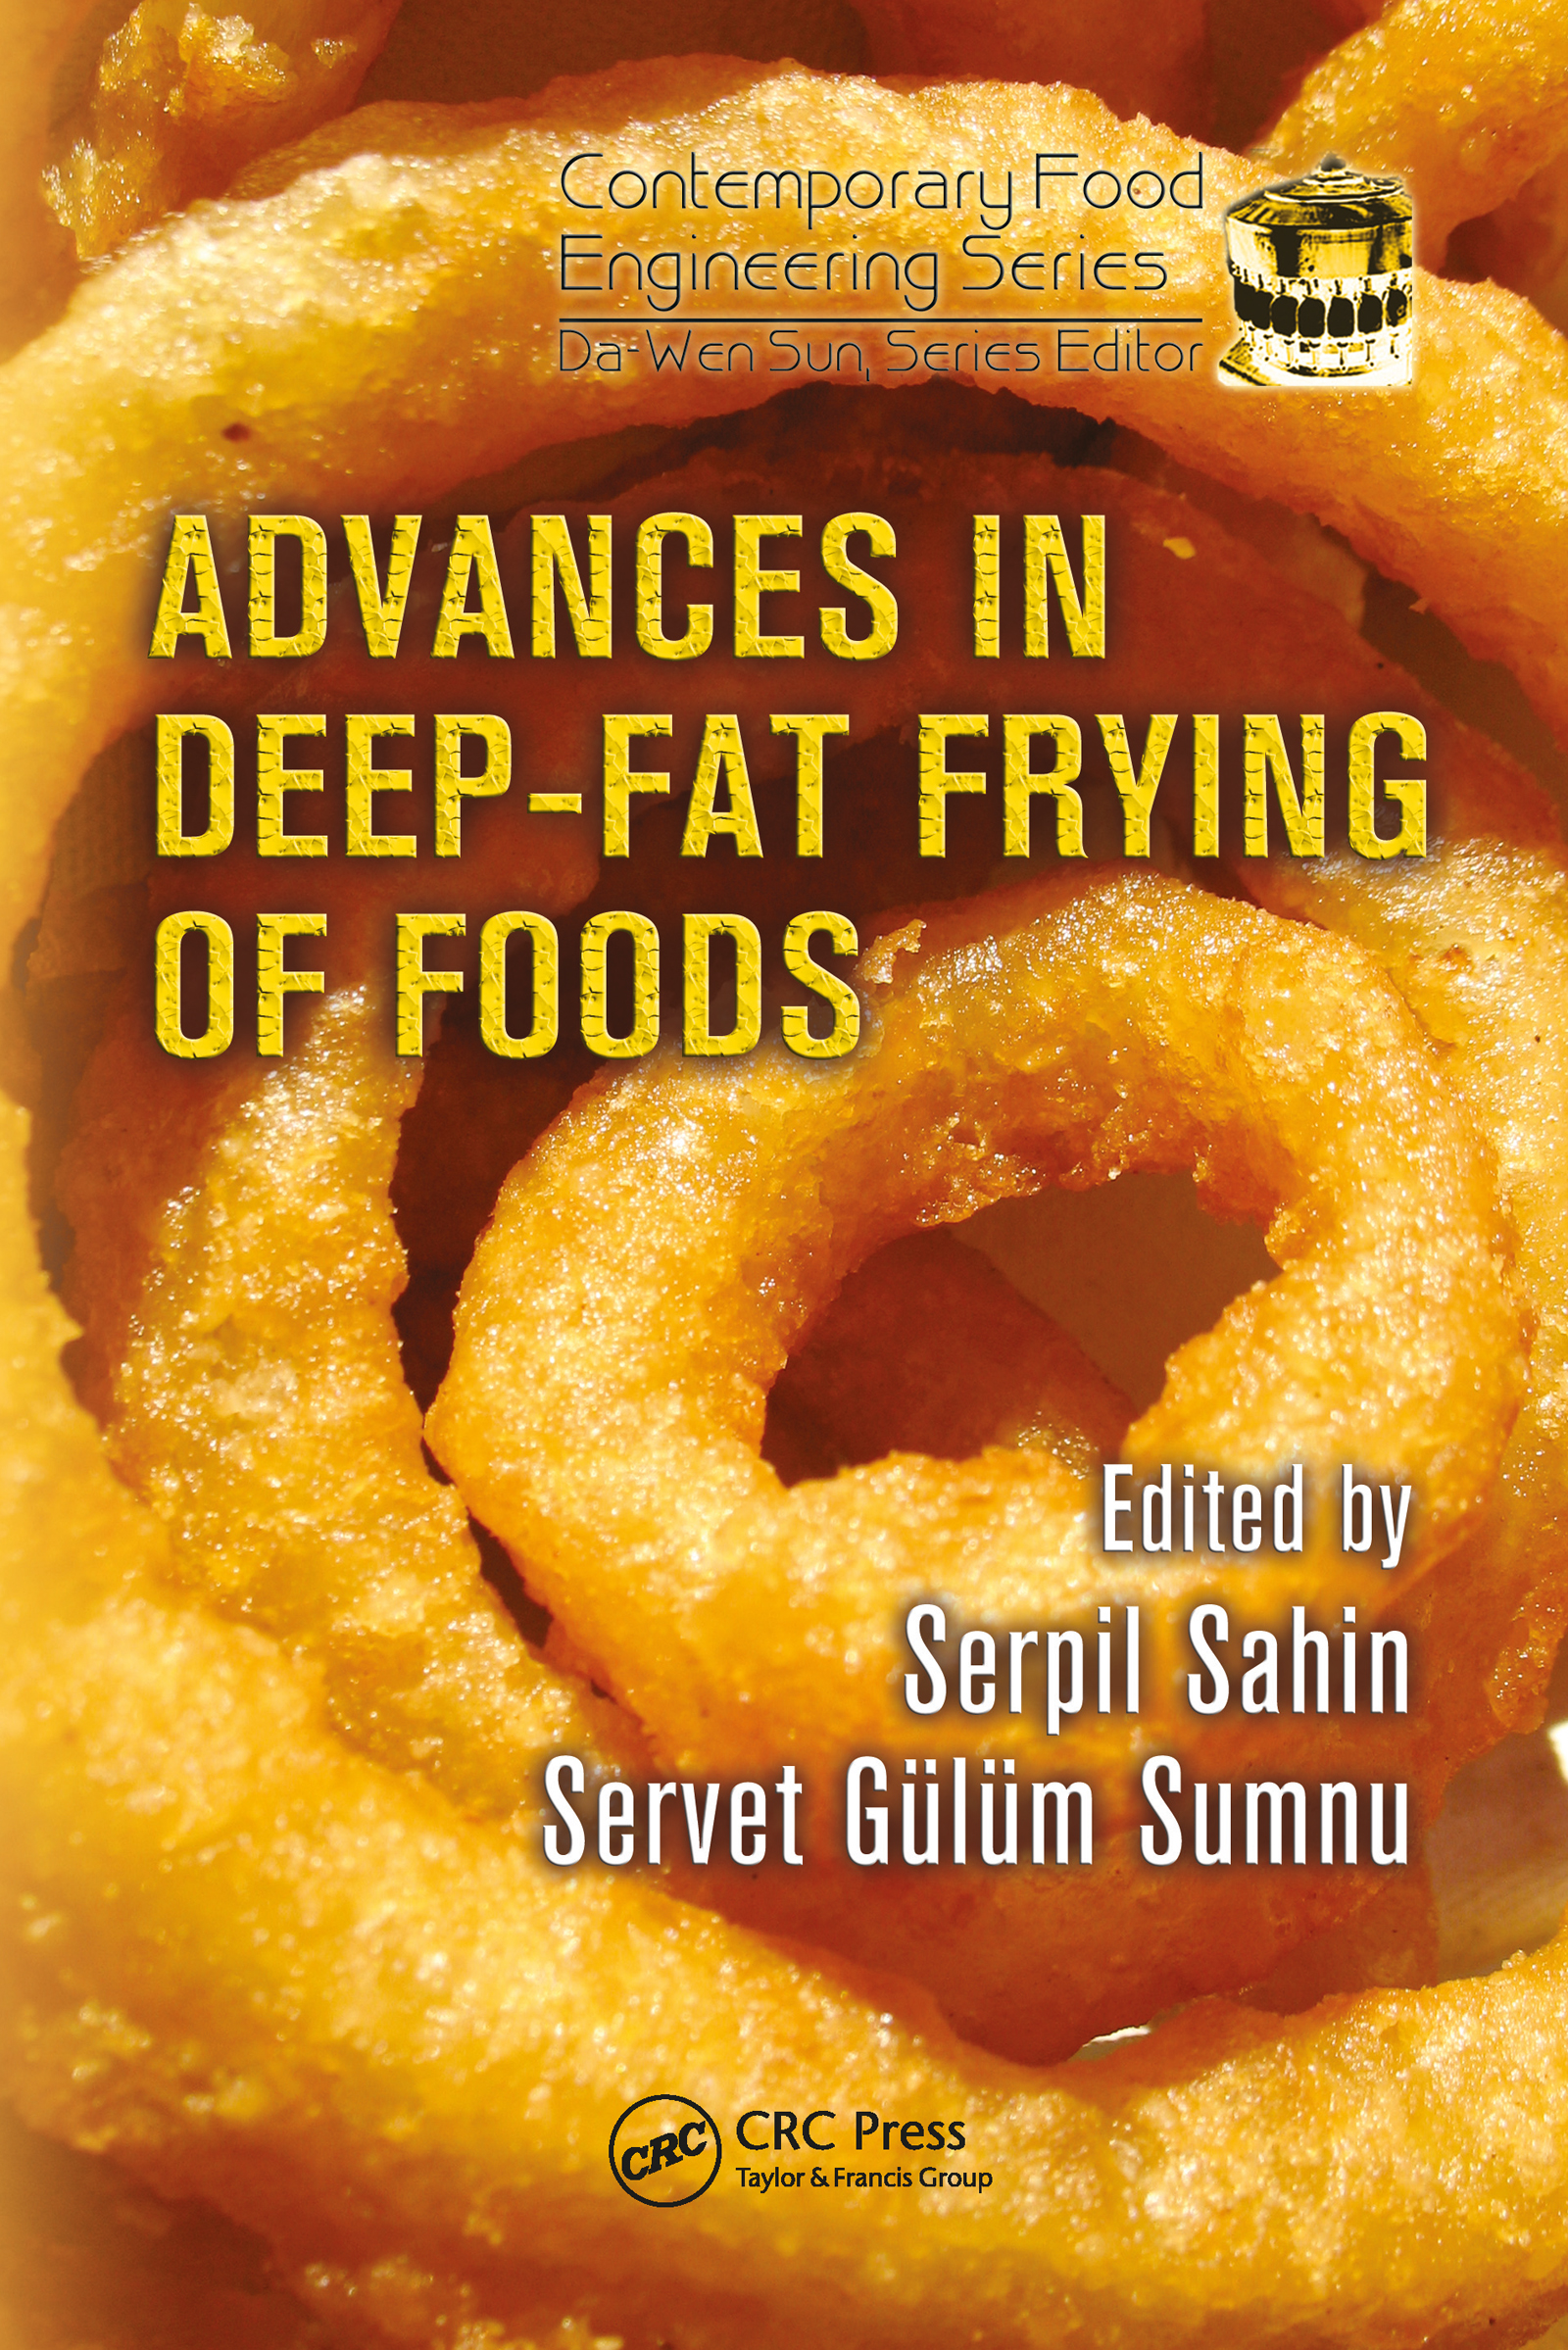 Advances in Deep-Fat Frying of Foods book cover